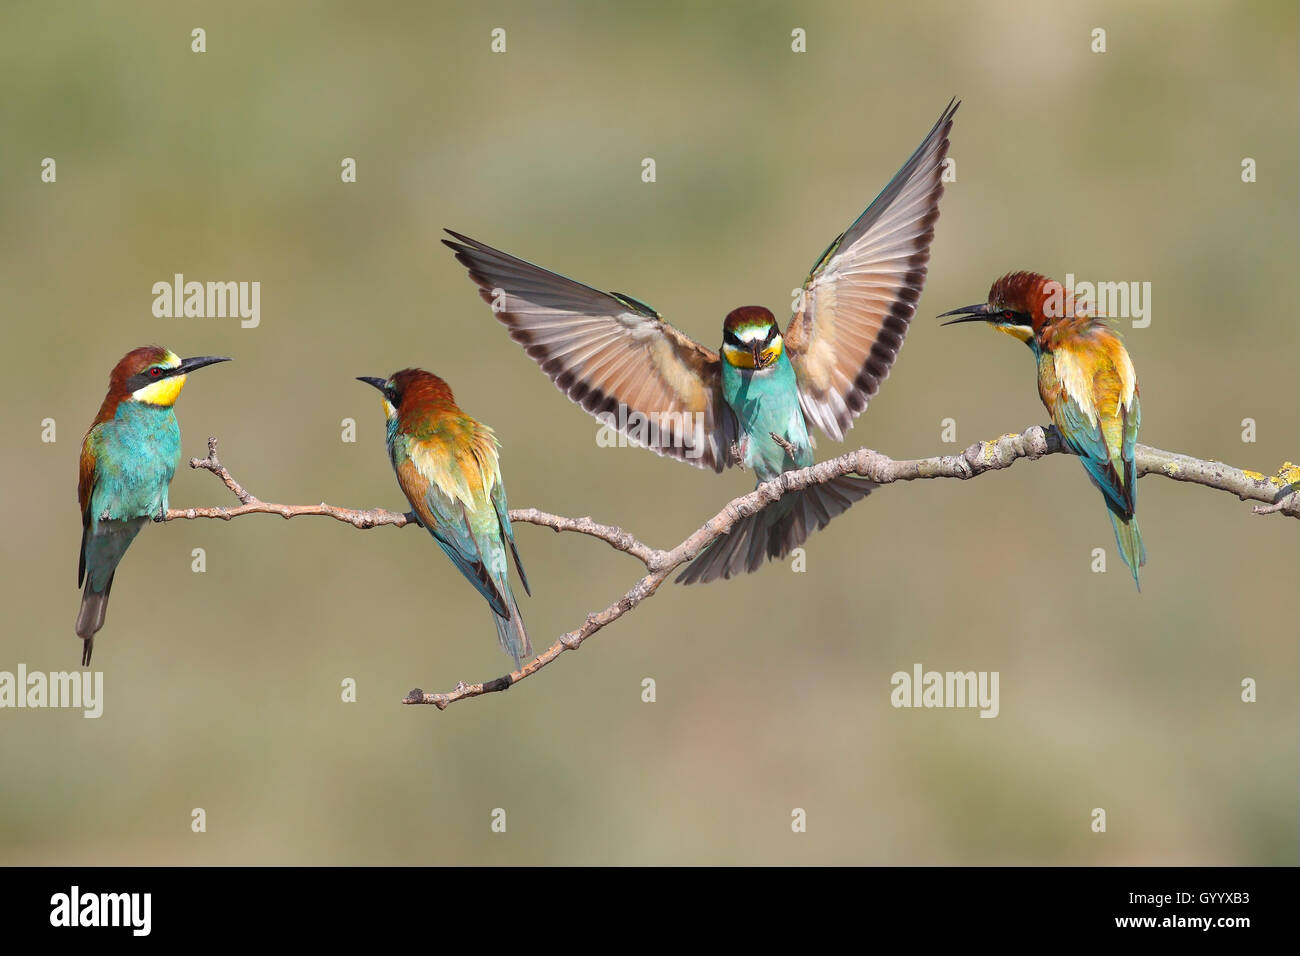 European bee-eaters (Merops apiaster), four birds, one in flight, Nickelsdorf, National Park Lake Neusiedl, Burgenland, Austria Stock Photo